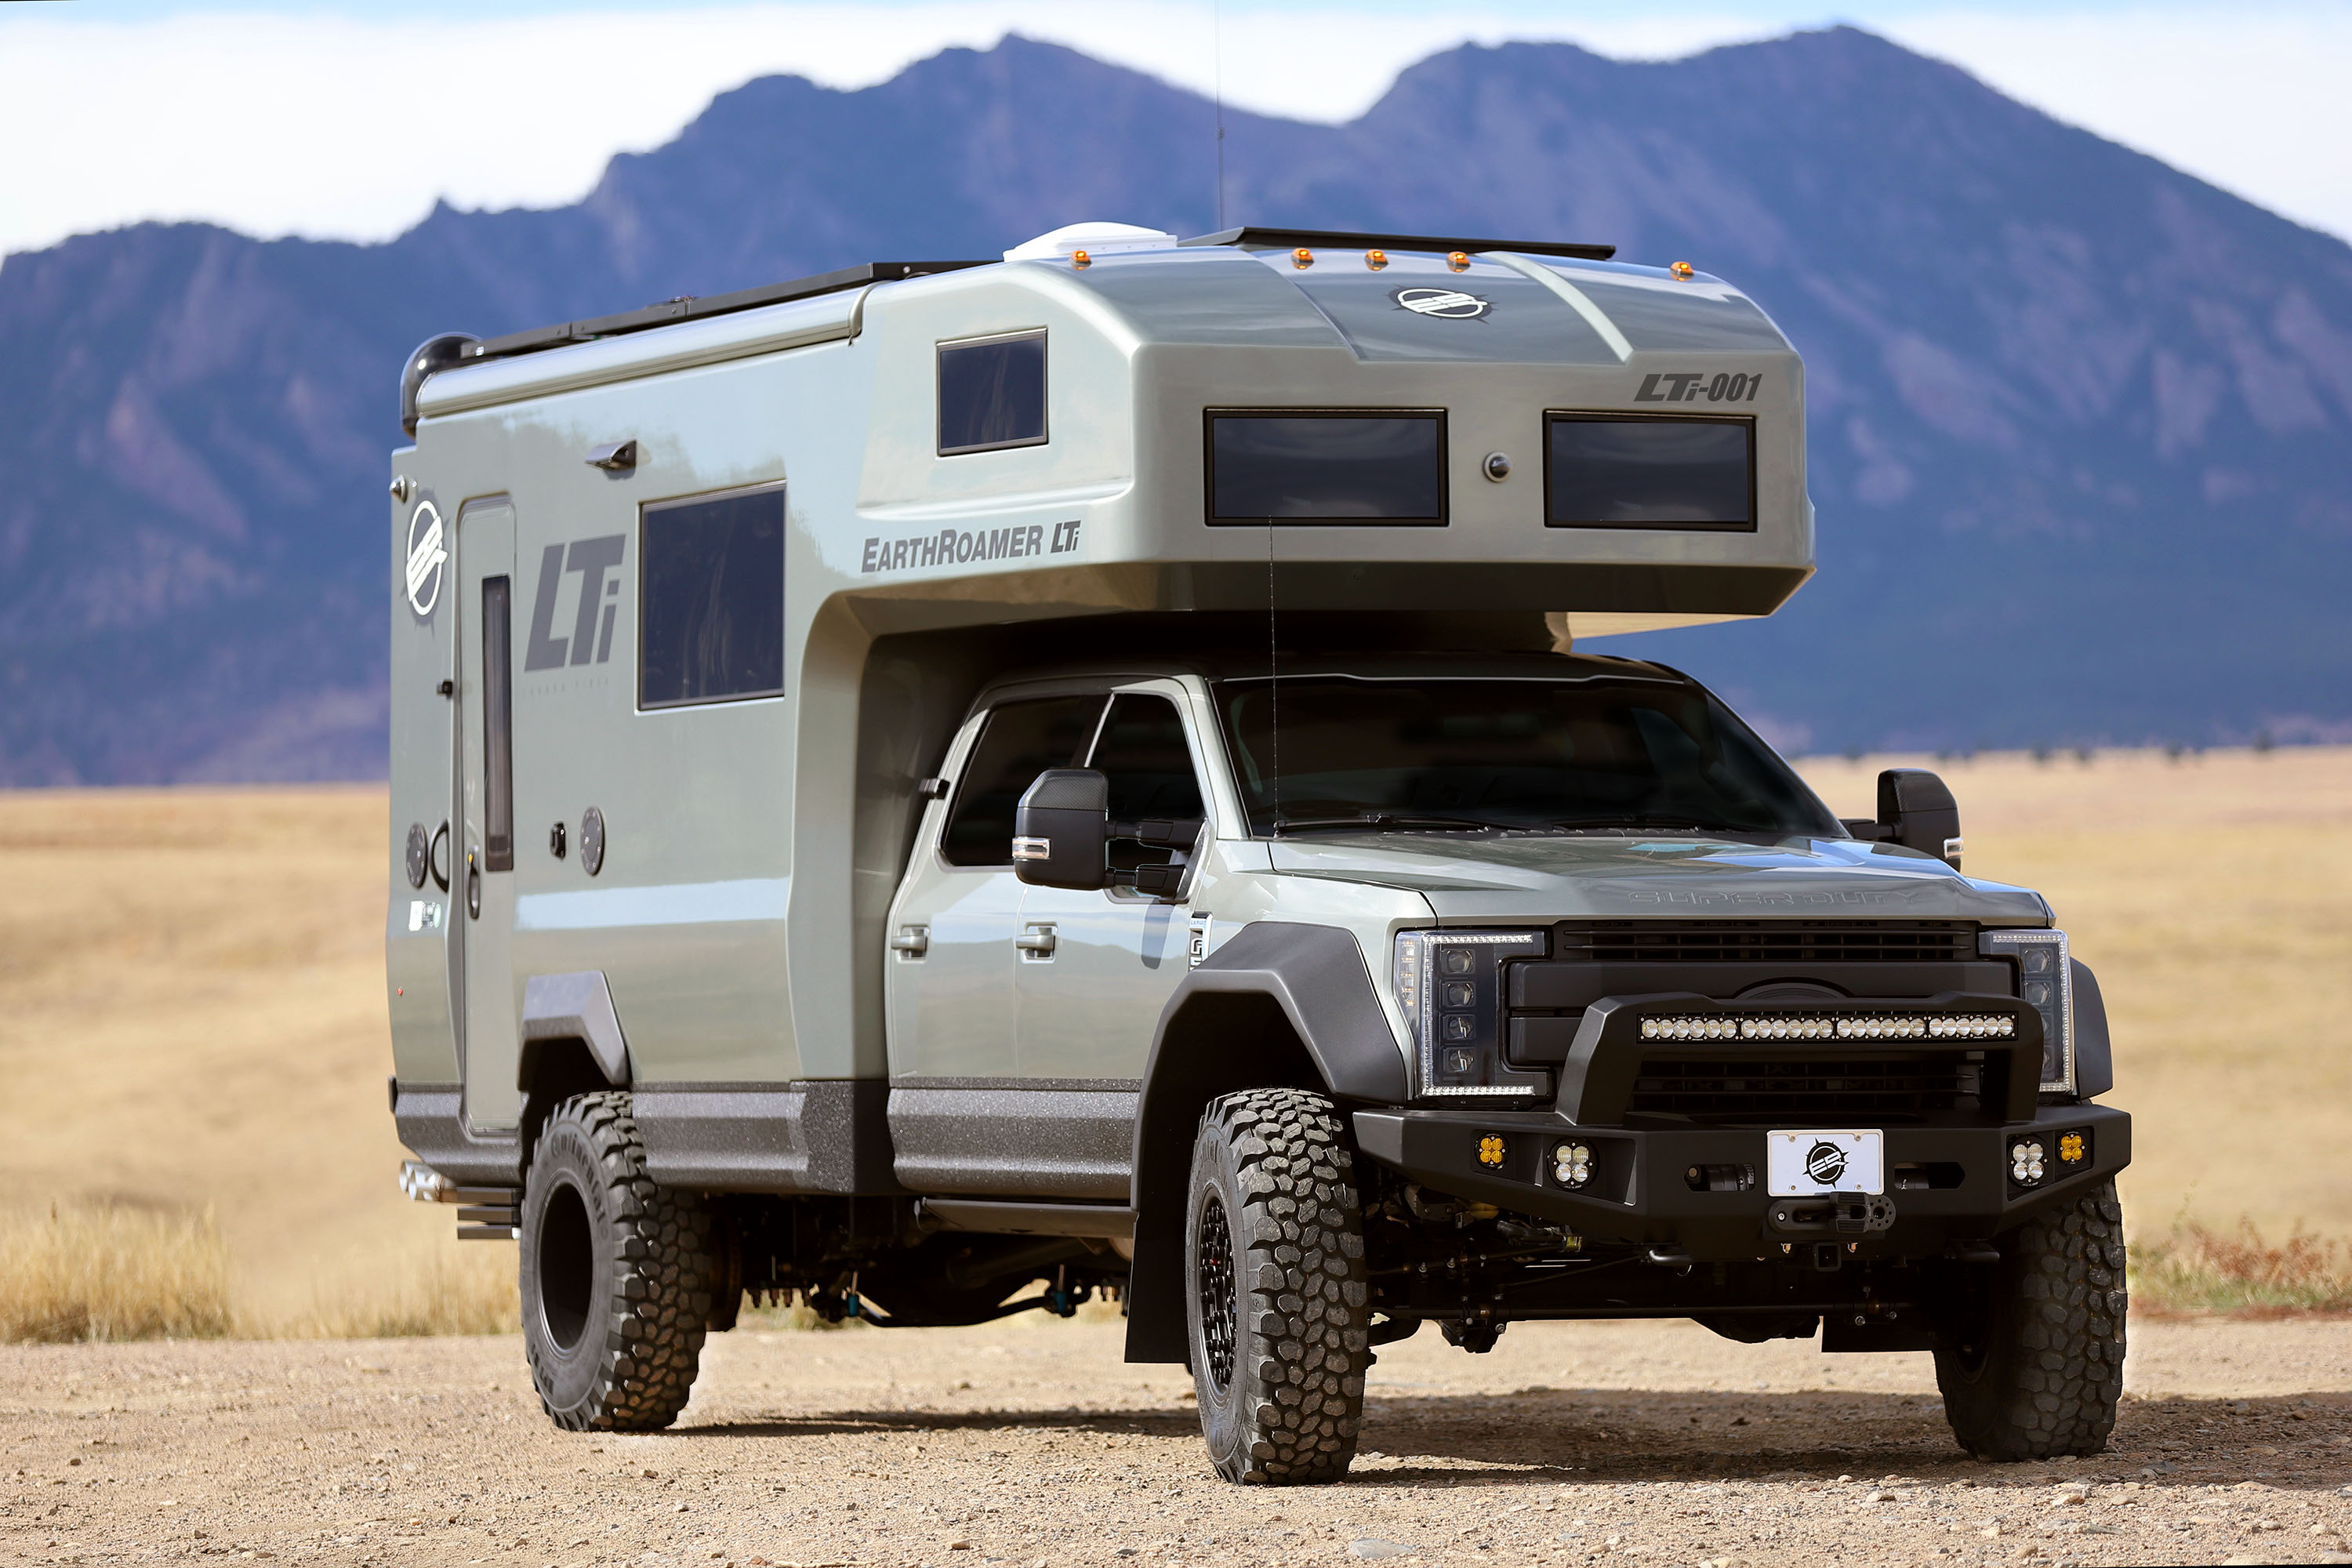 An exterior view of a silver four-wheel-drive camper with an over-the-cab sleeping area, big burly tires, and mountains in the background.